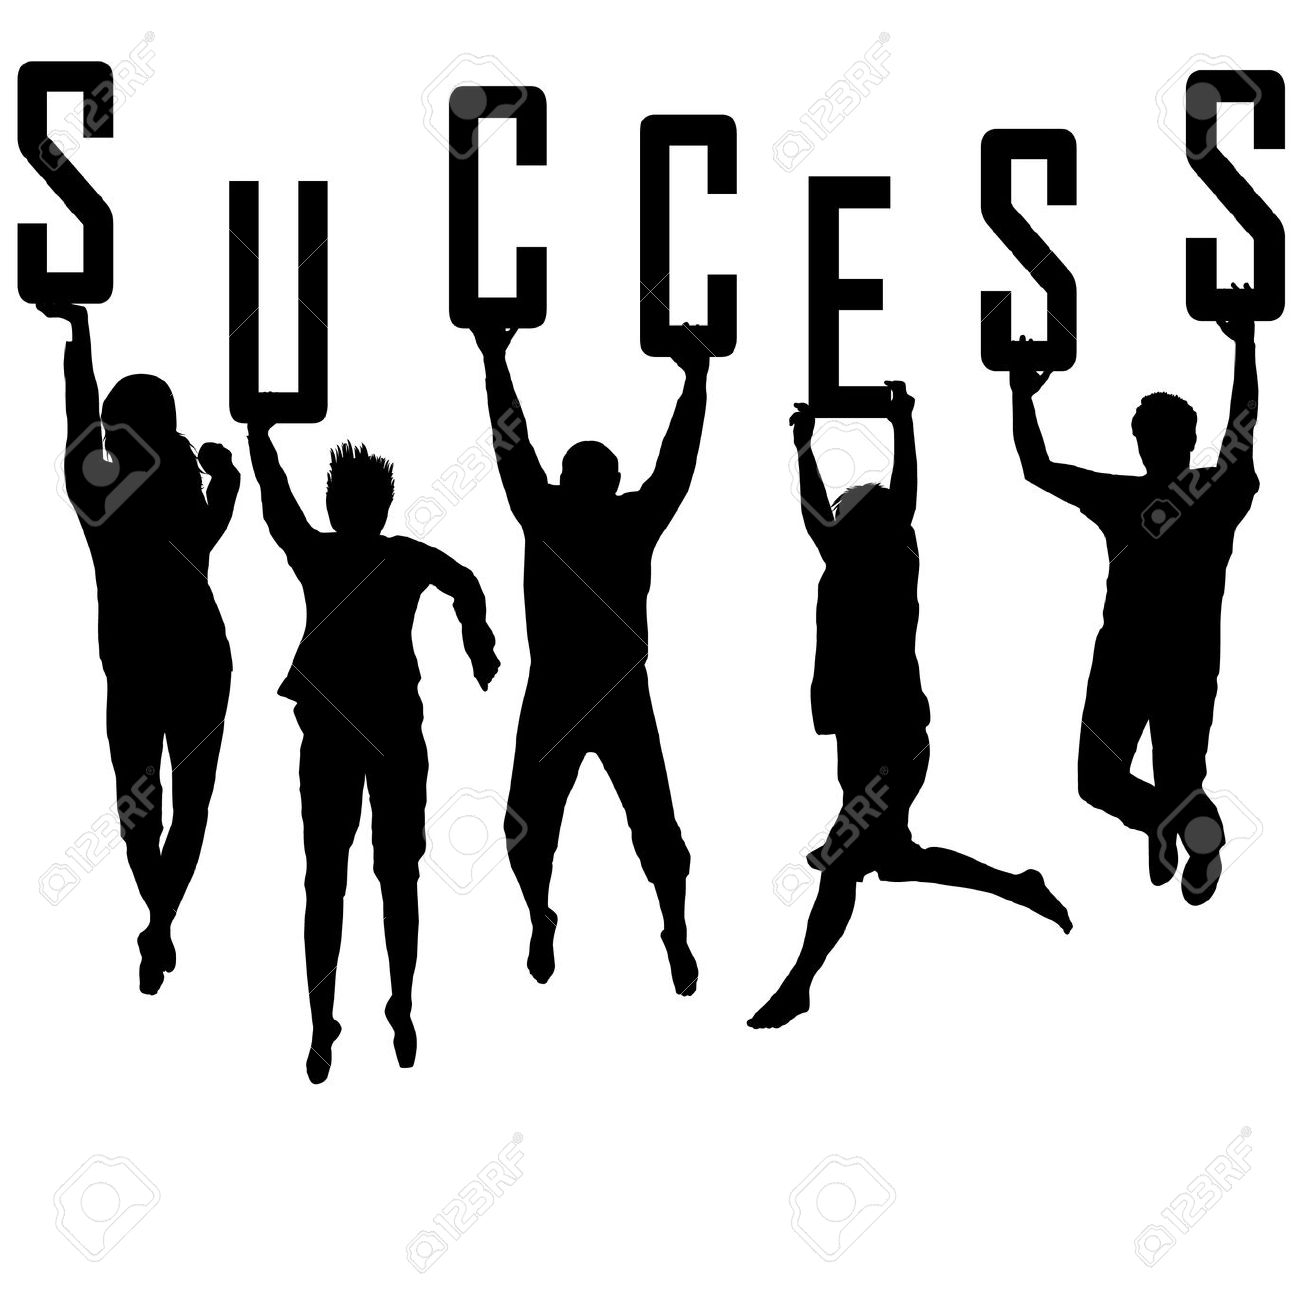 Successful People Clipart.